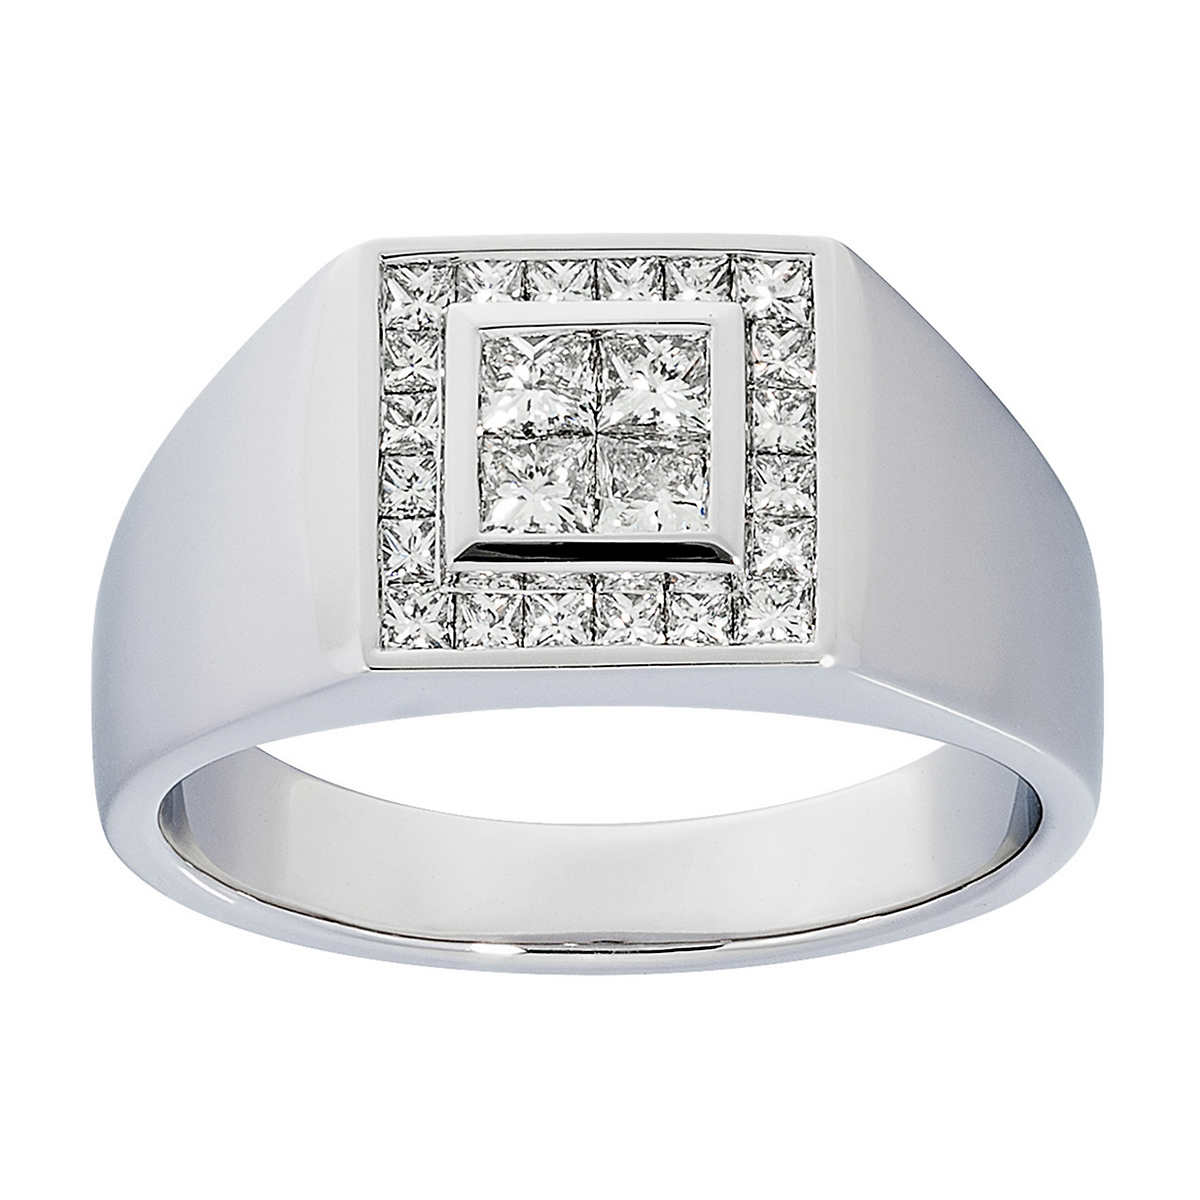 princess cut 095 ctw vs2 clarity i color diamond 14kt white gold mens ring